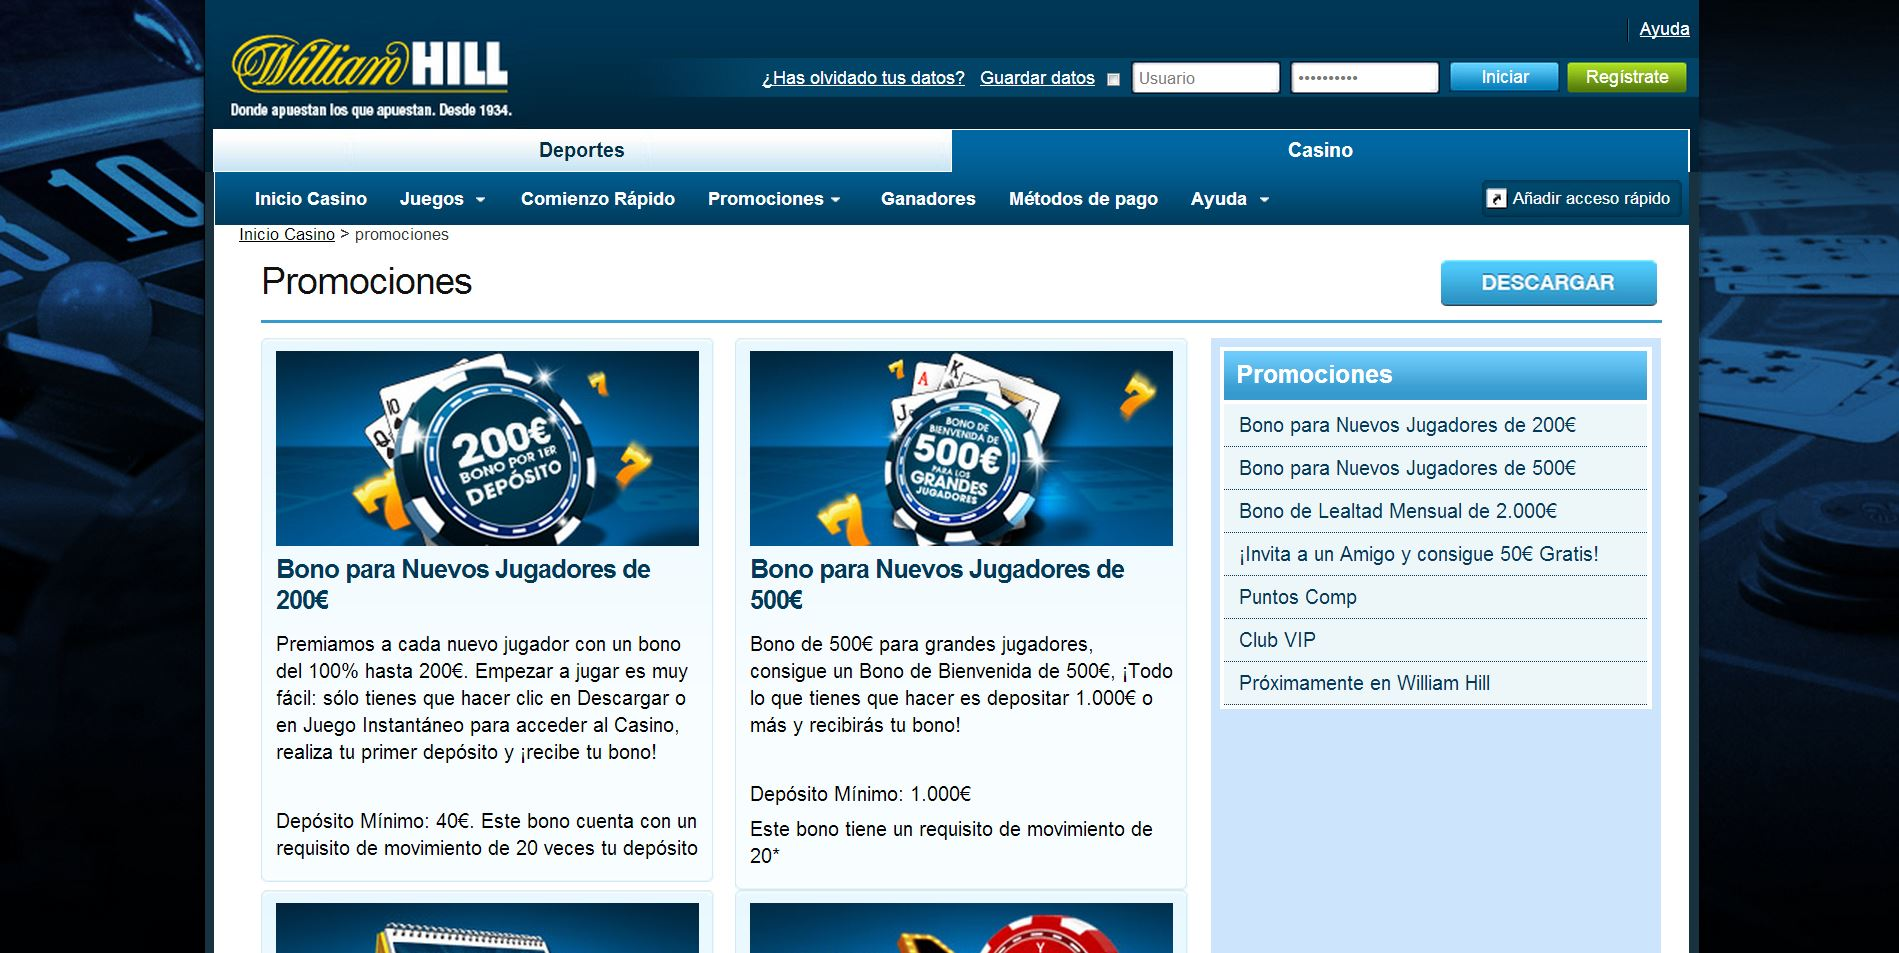 Juegos casino el celular william Hill es 149314